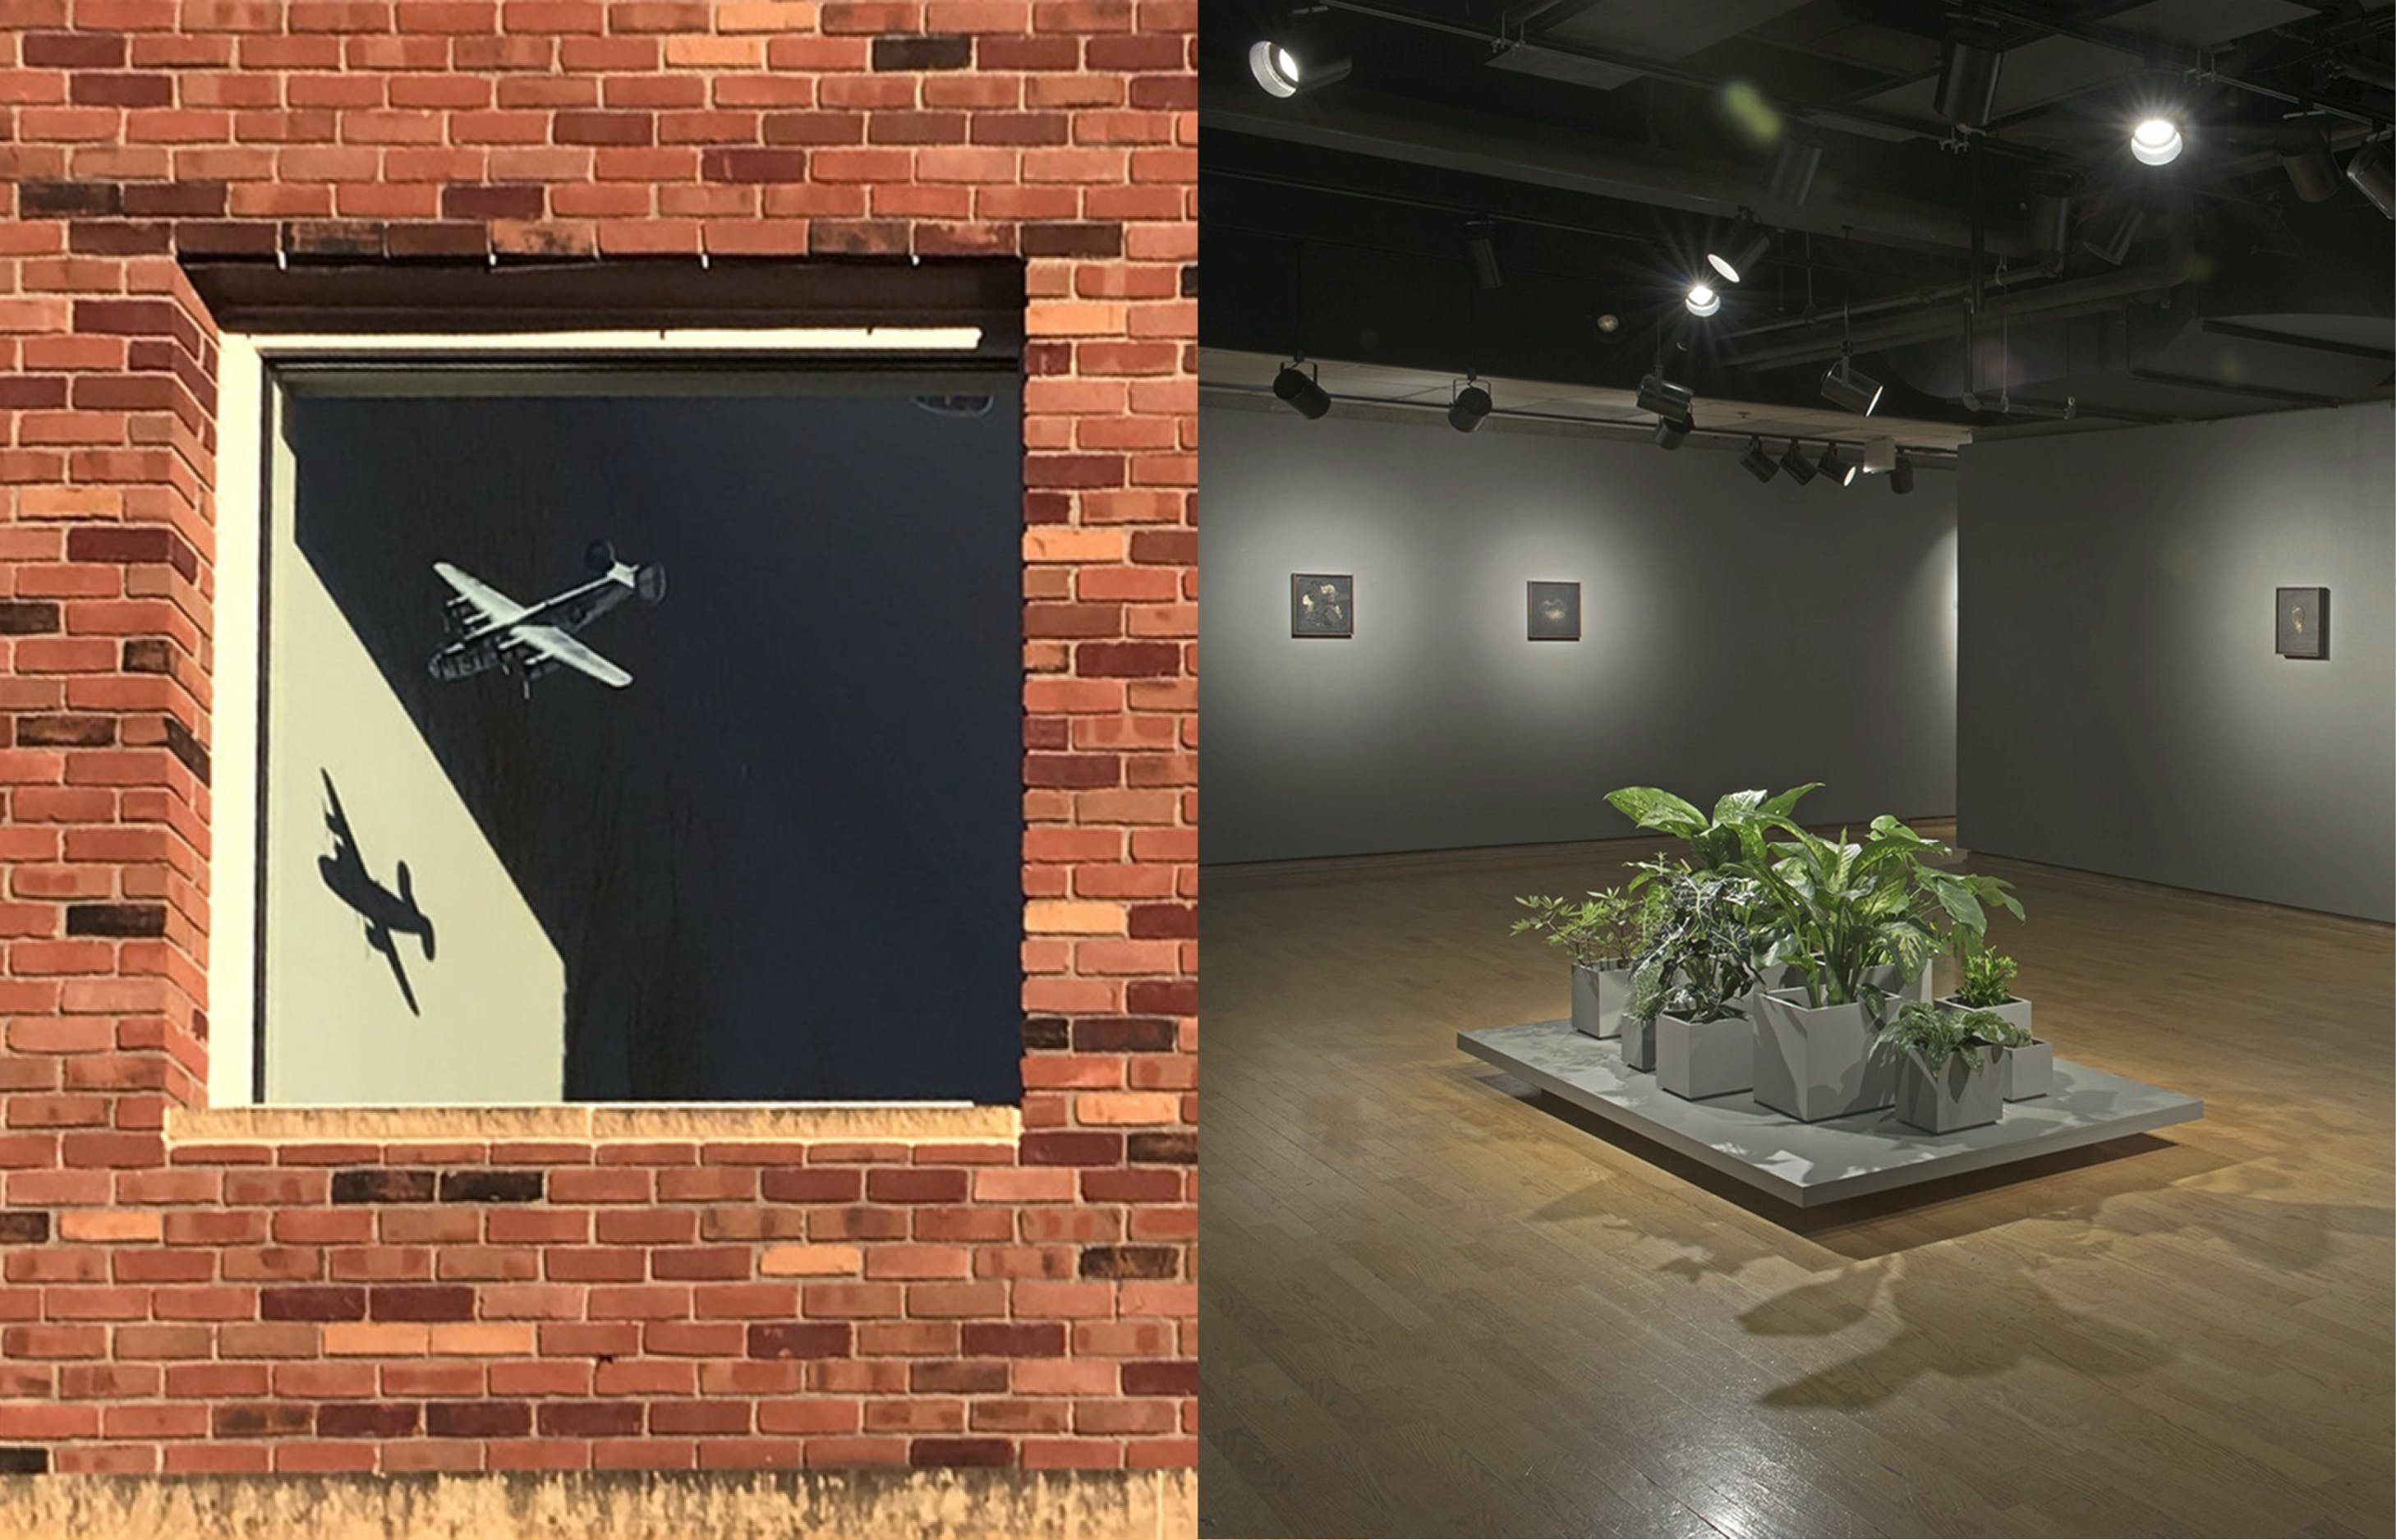 Recent on-campus exhibitions by Professors of Art Michelle Westmark Wingard (left, Olson Gallery) and Amanda Hamilton (right, Johnson Gallery). Both professors are recipients of 2019 Artist Initiative grants.